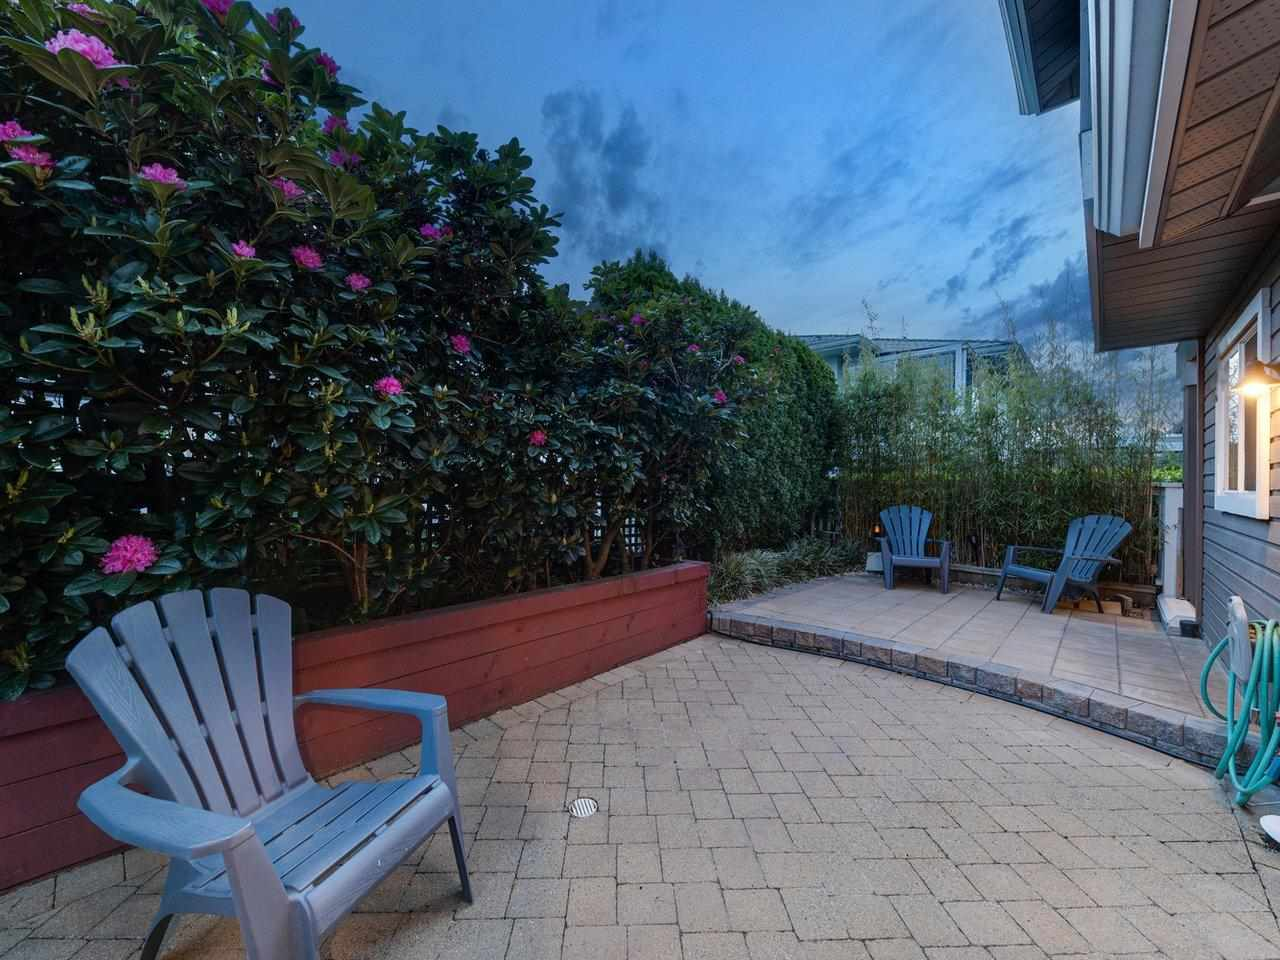 515 ST. ANDREWS AVENUE - Lower Lonsdale Townhouse for sale, 3 Bedrooms (R2590362) - #7